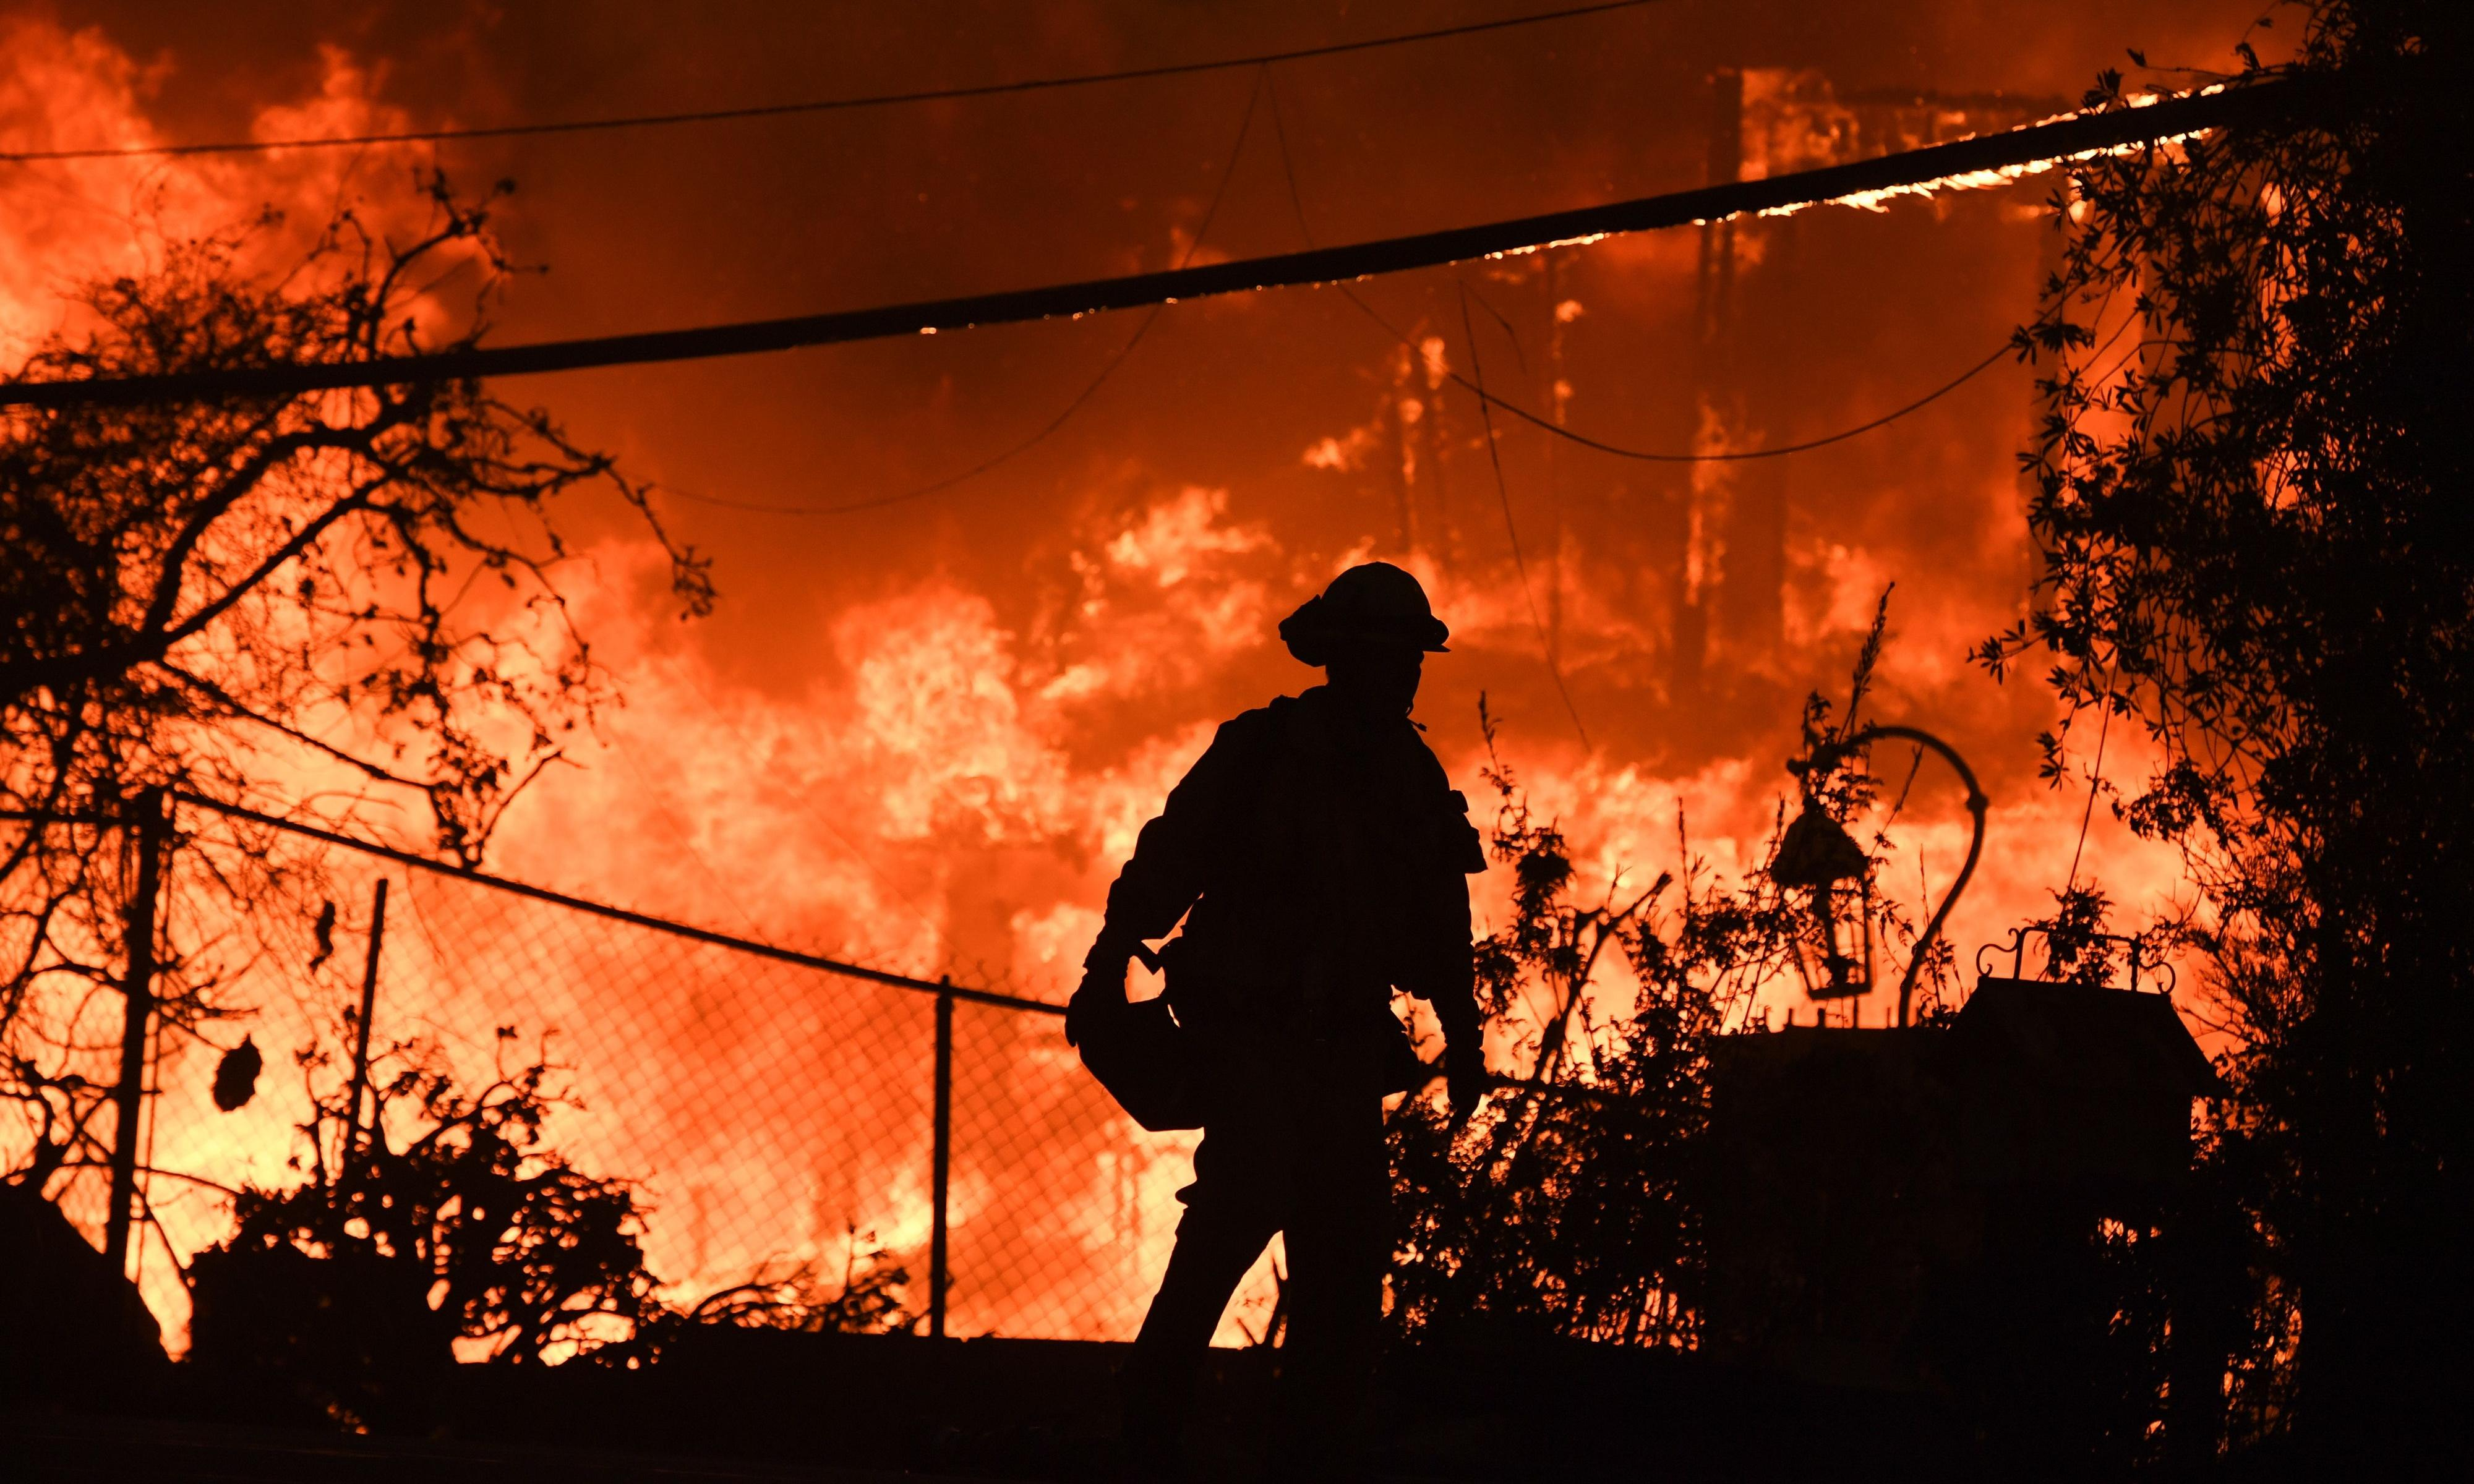 How to survive wildfires: let's do as nature does